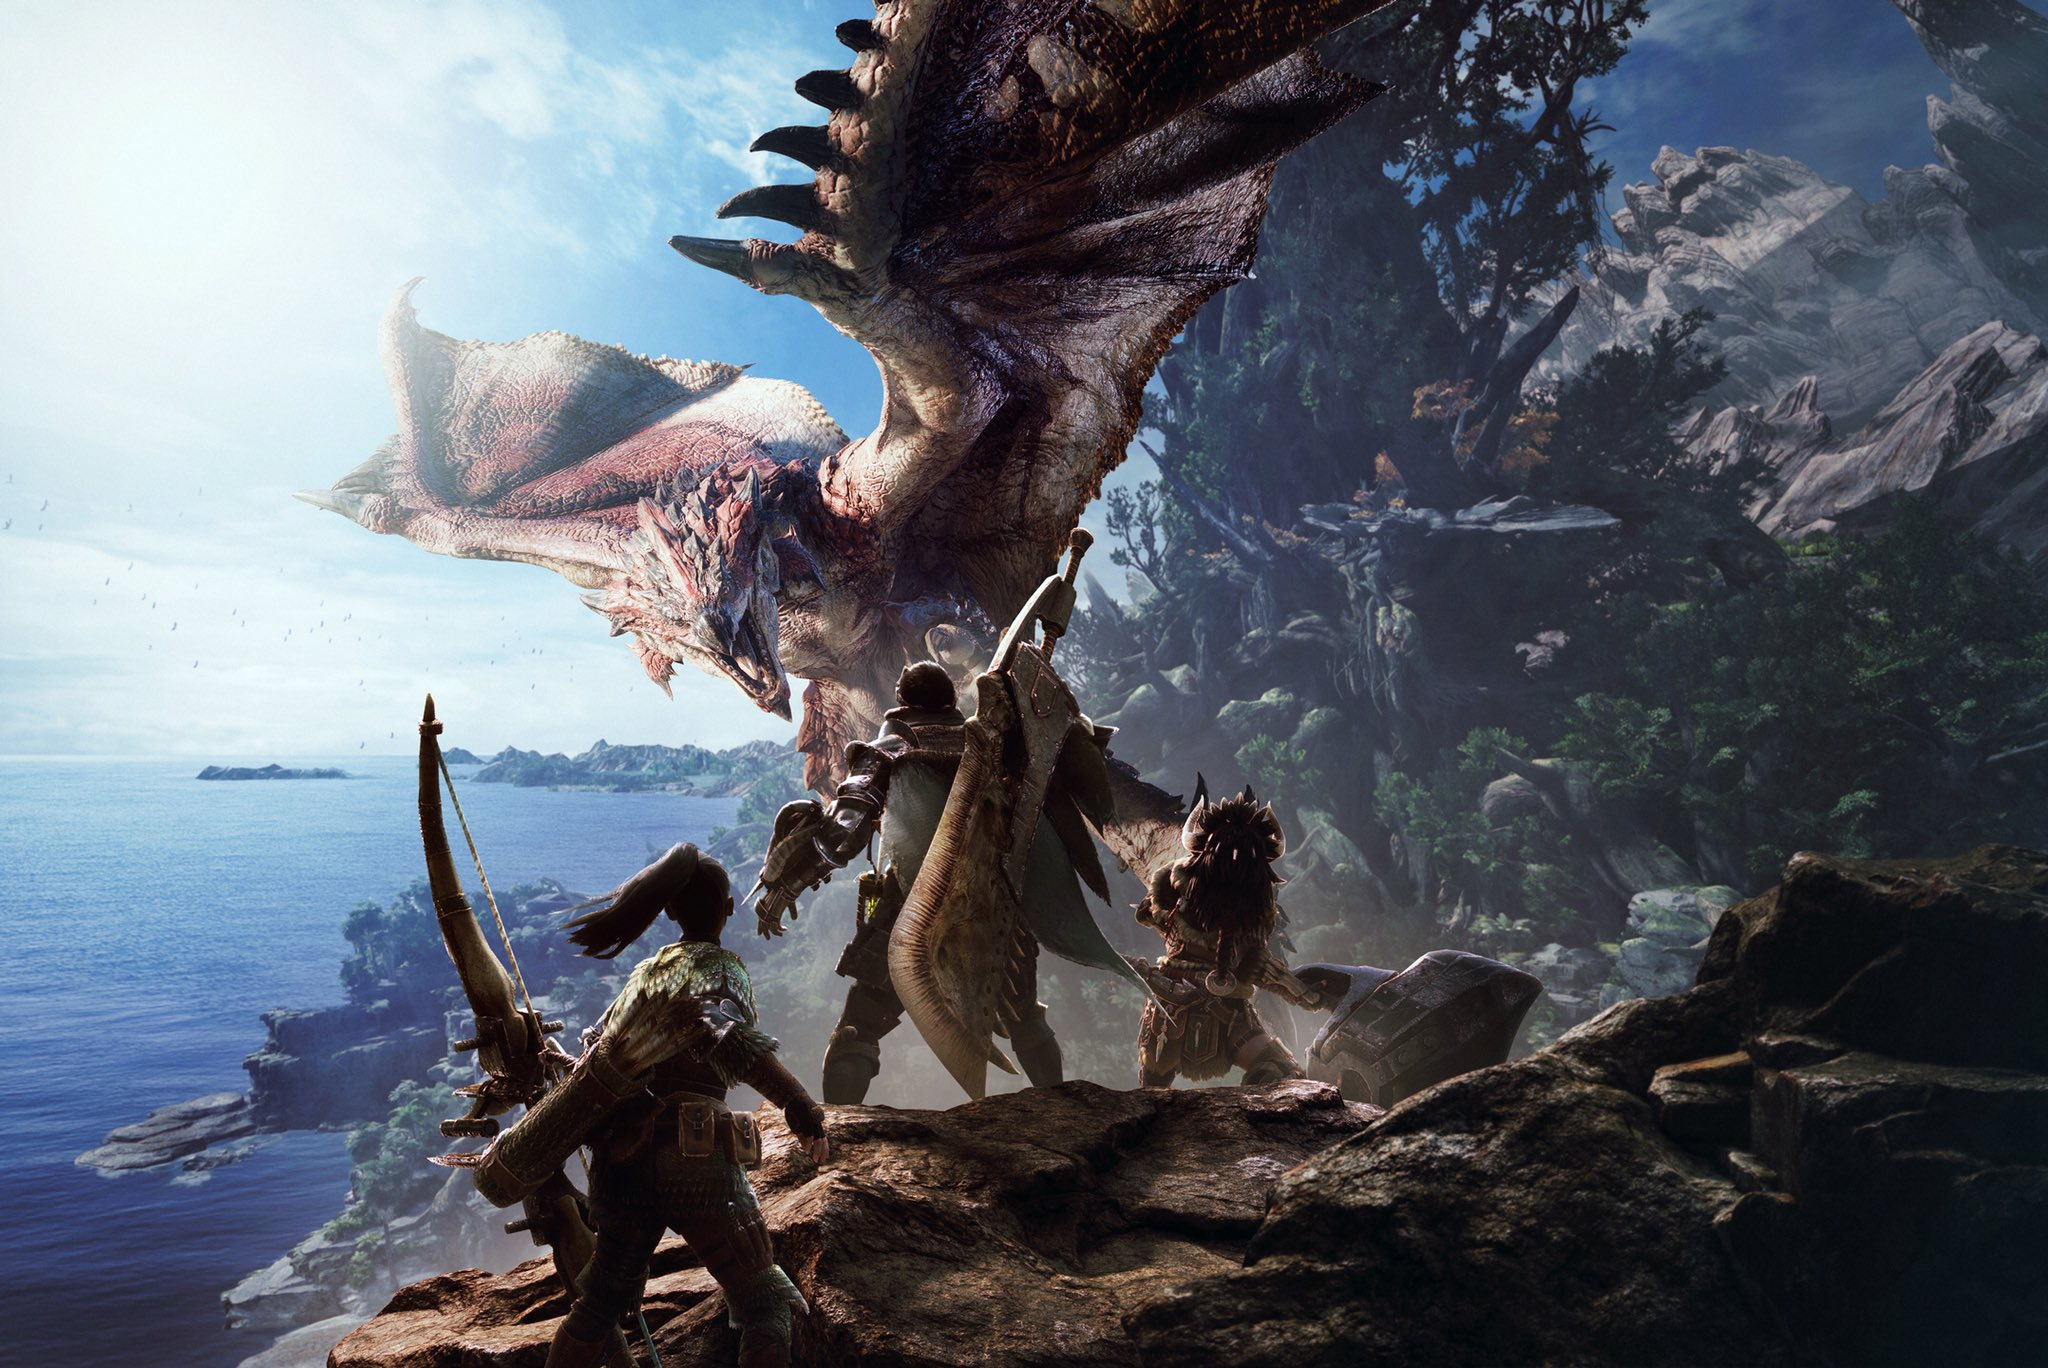 Monster Hunter World debuts at E3 2017, set to arrive next year